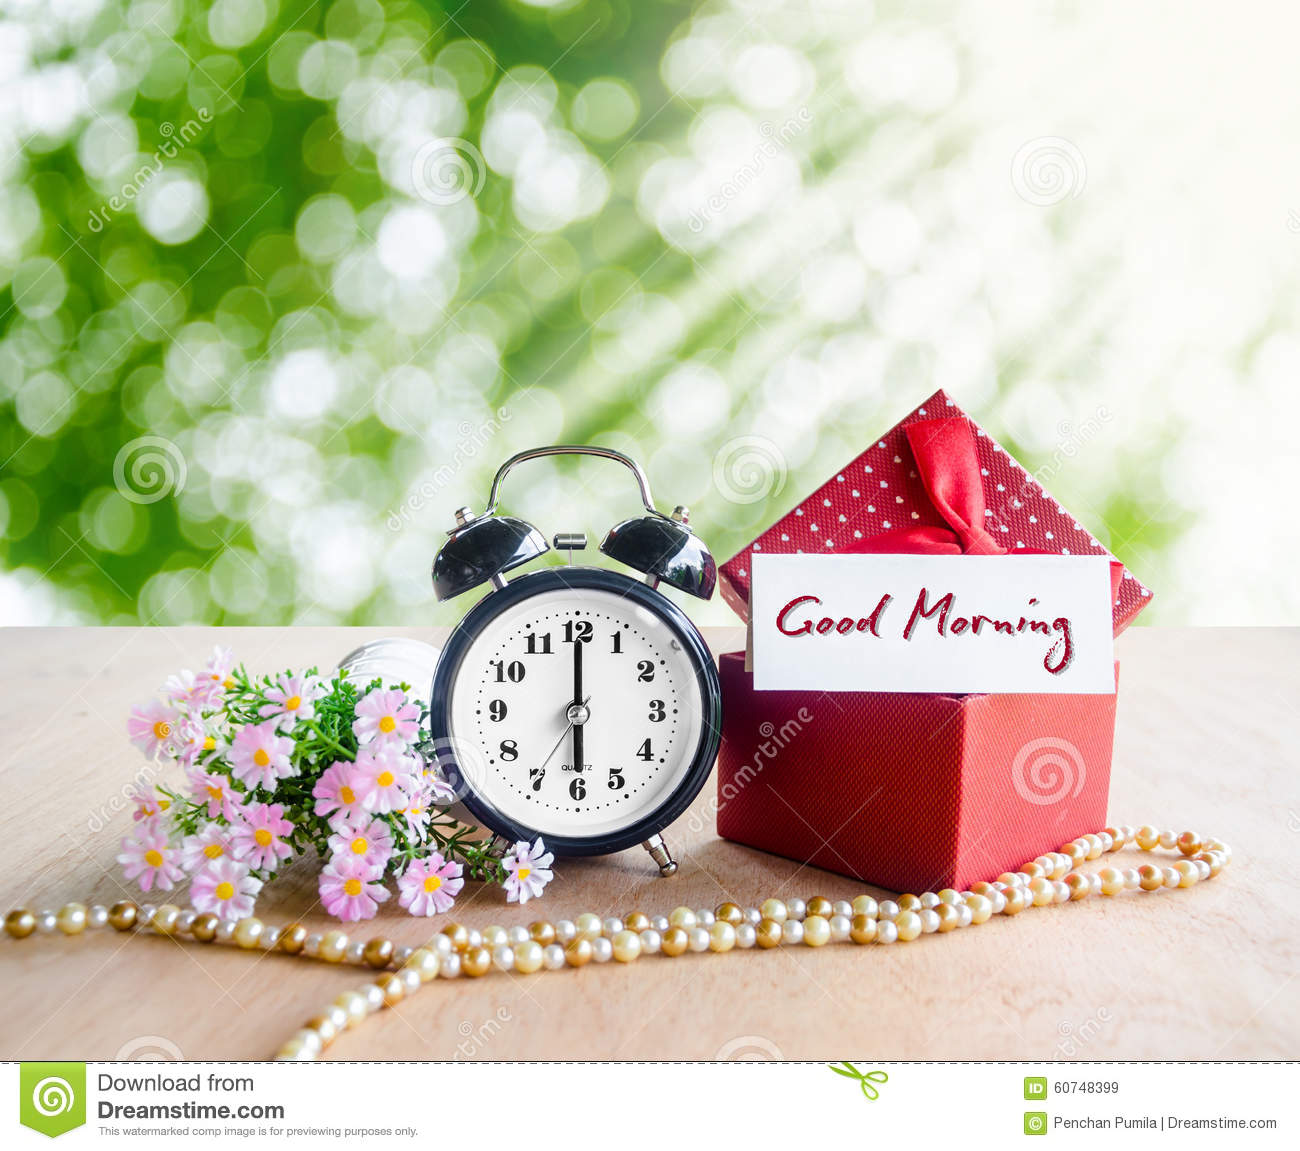 good morning tag and alarm clock stock image image of nature